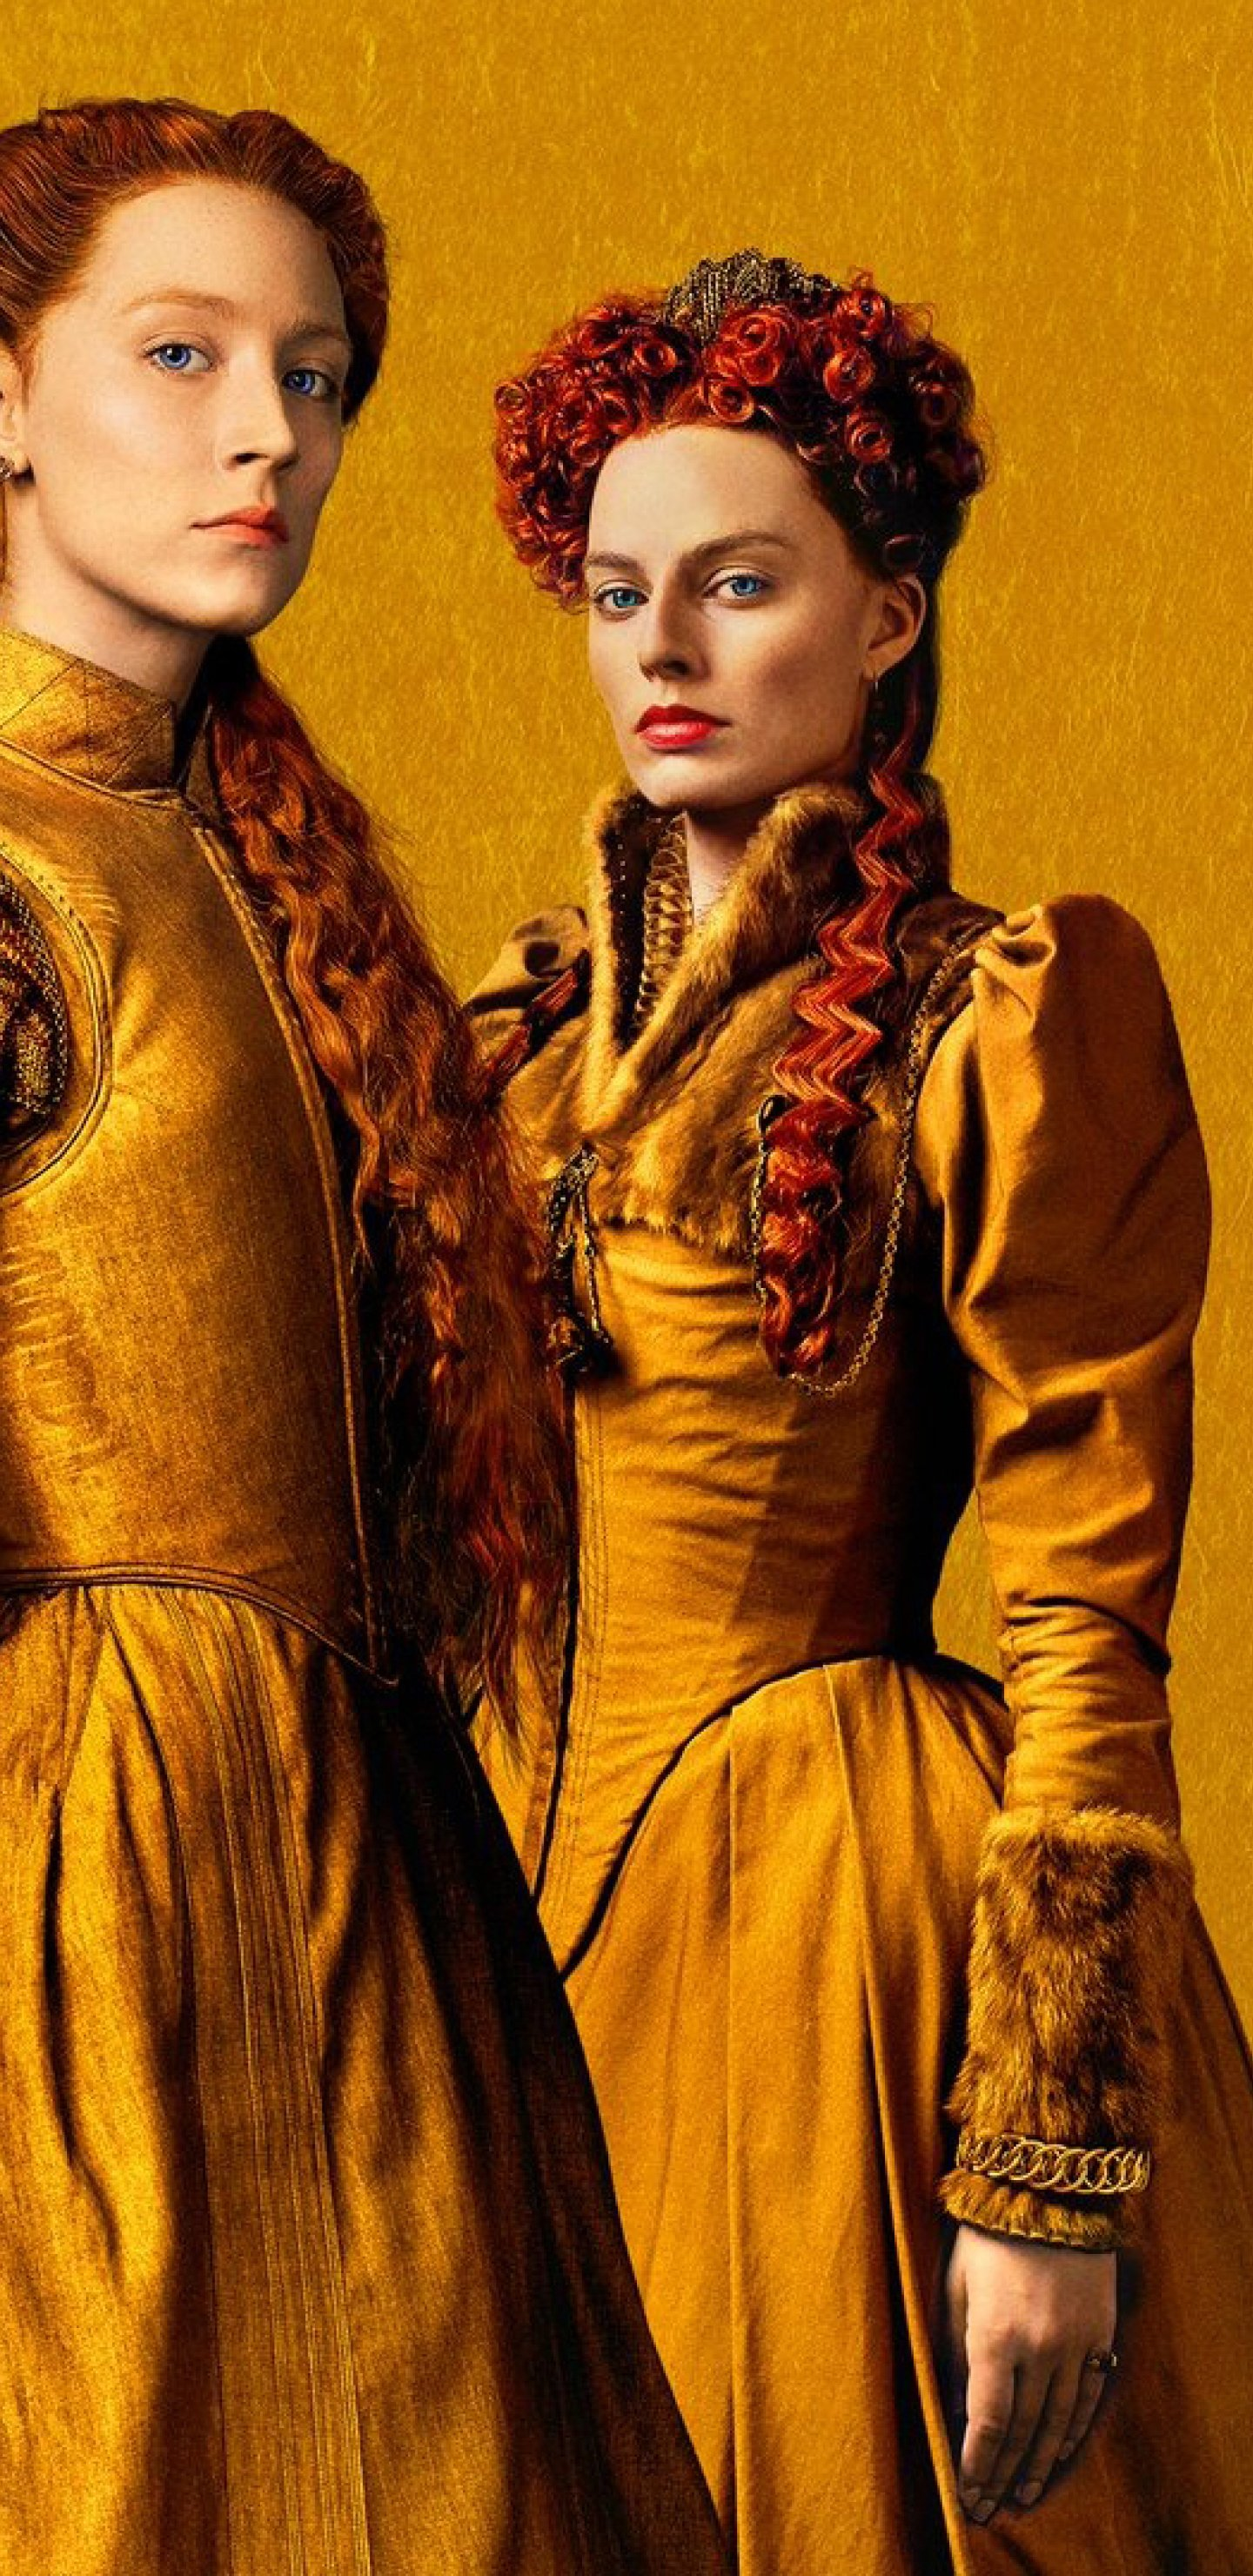 1440x2960 Margot Robbie and Saoirse Ronan in Mary Queen of Scots 1440x2960